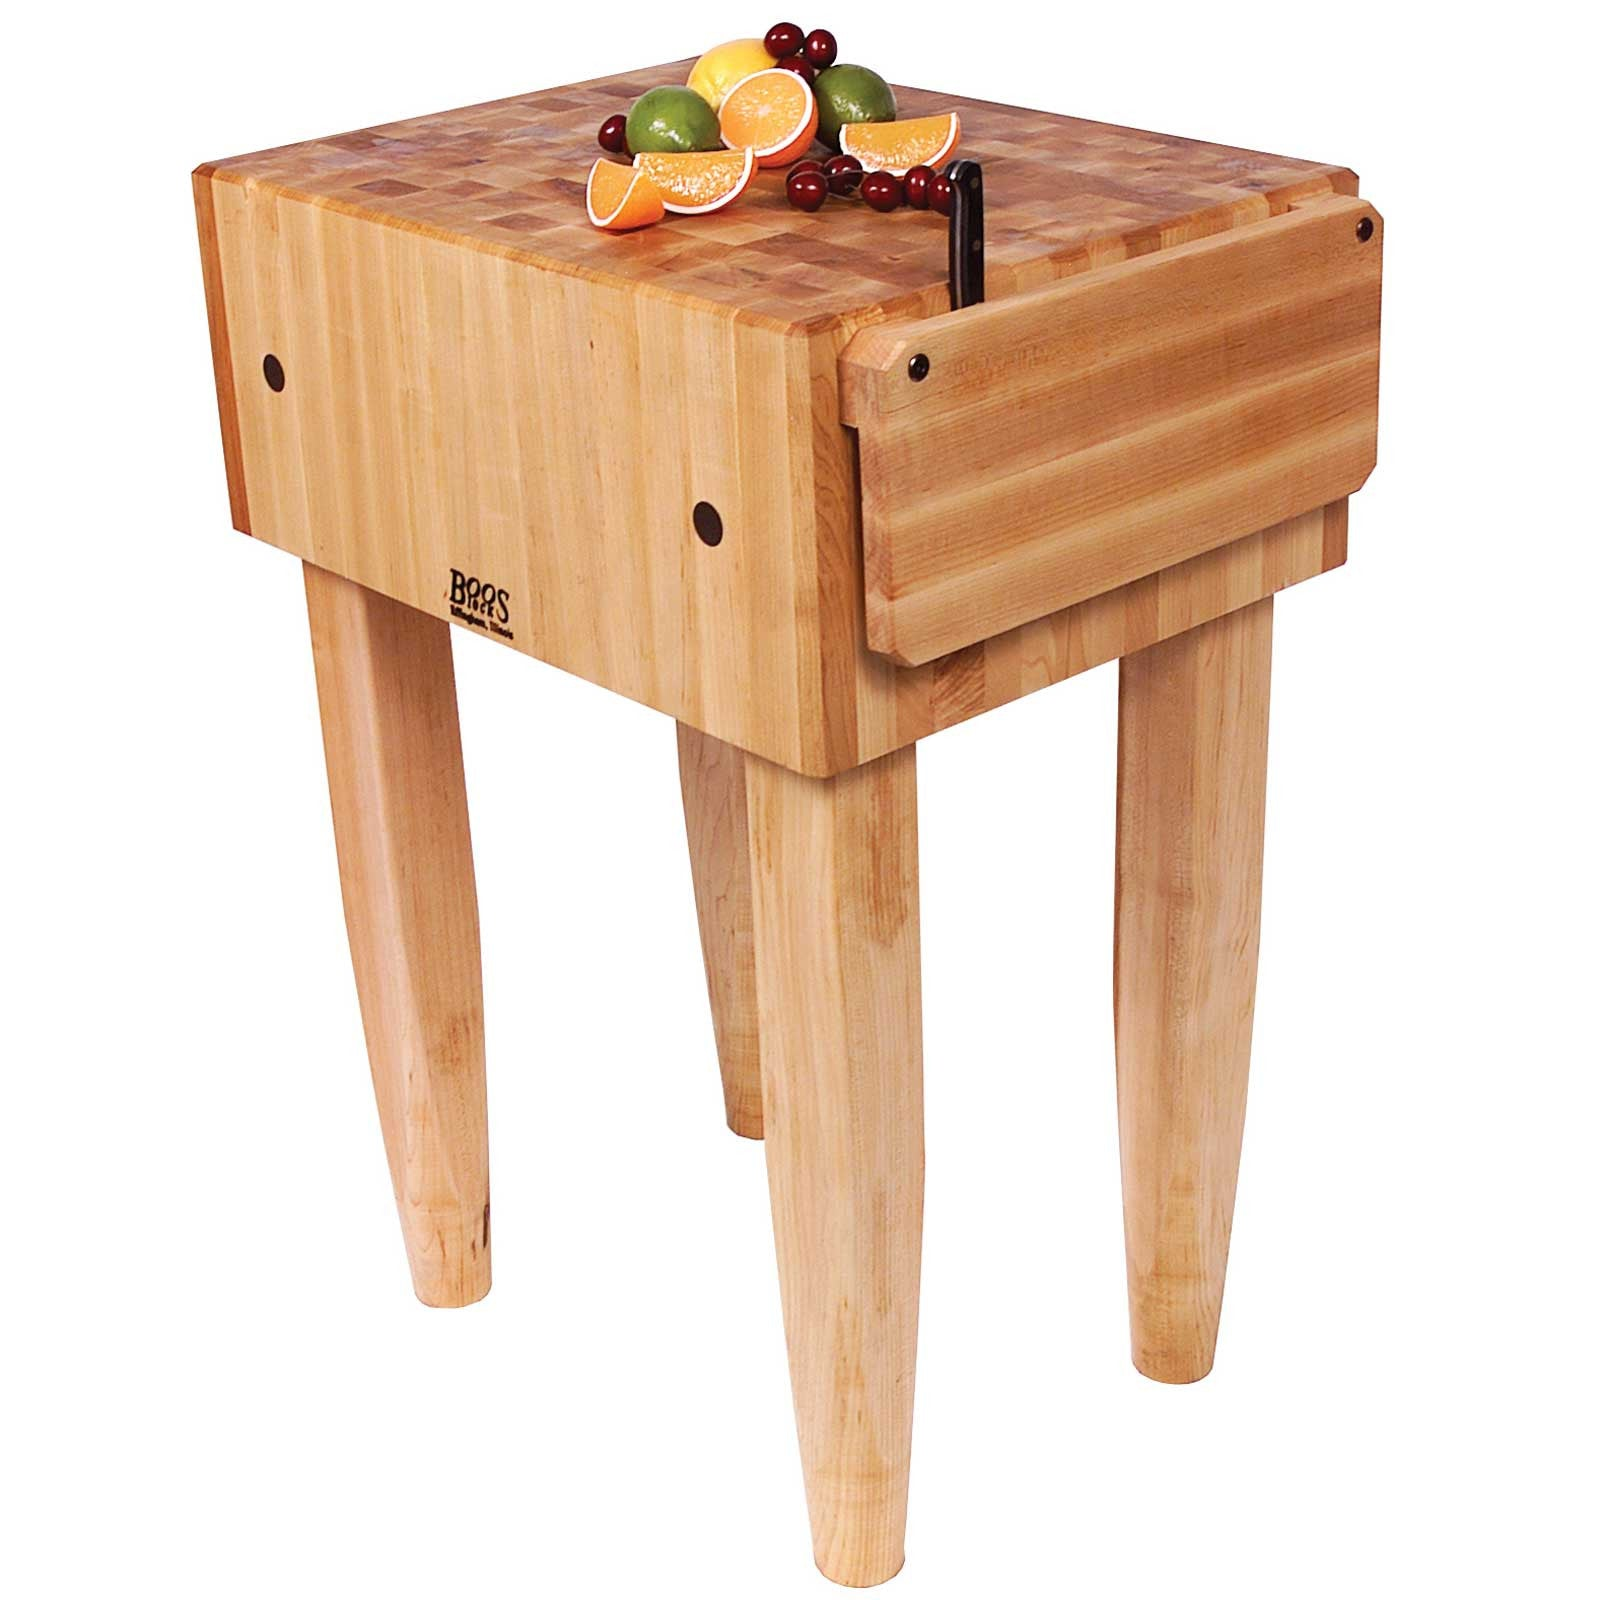 "John Boos 18"" x 18"" x 10"" Maple Top PCA Butcher Block"